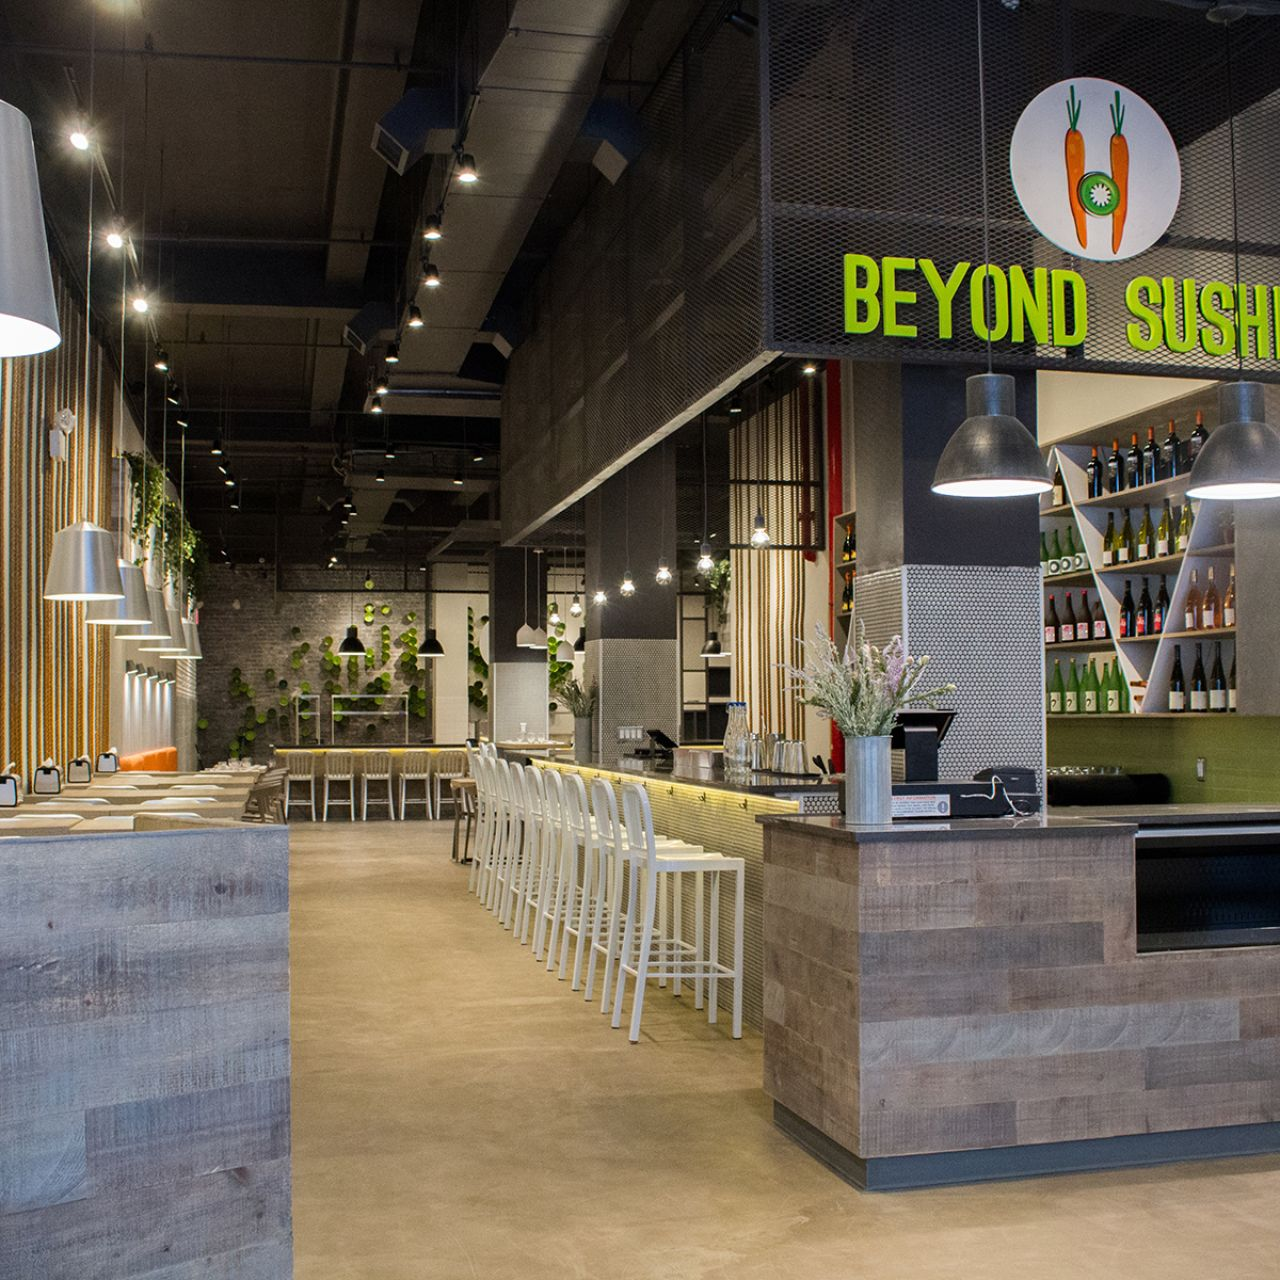 Beyond Sushi Herald Square Restaurant New York Ny Opentable We look forward to serving you! beyond sushi herald square restaurant